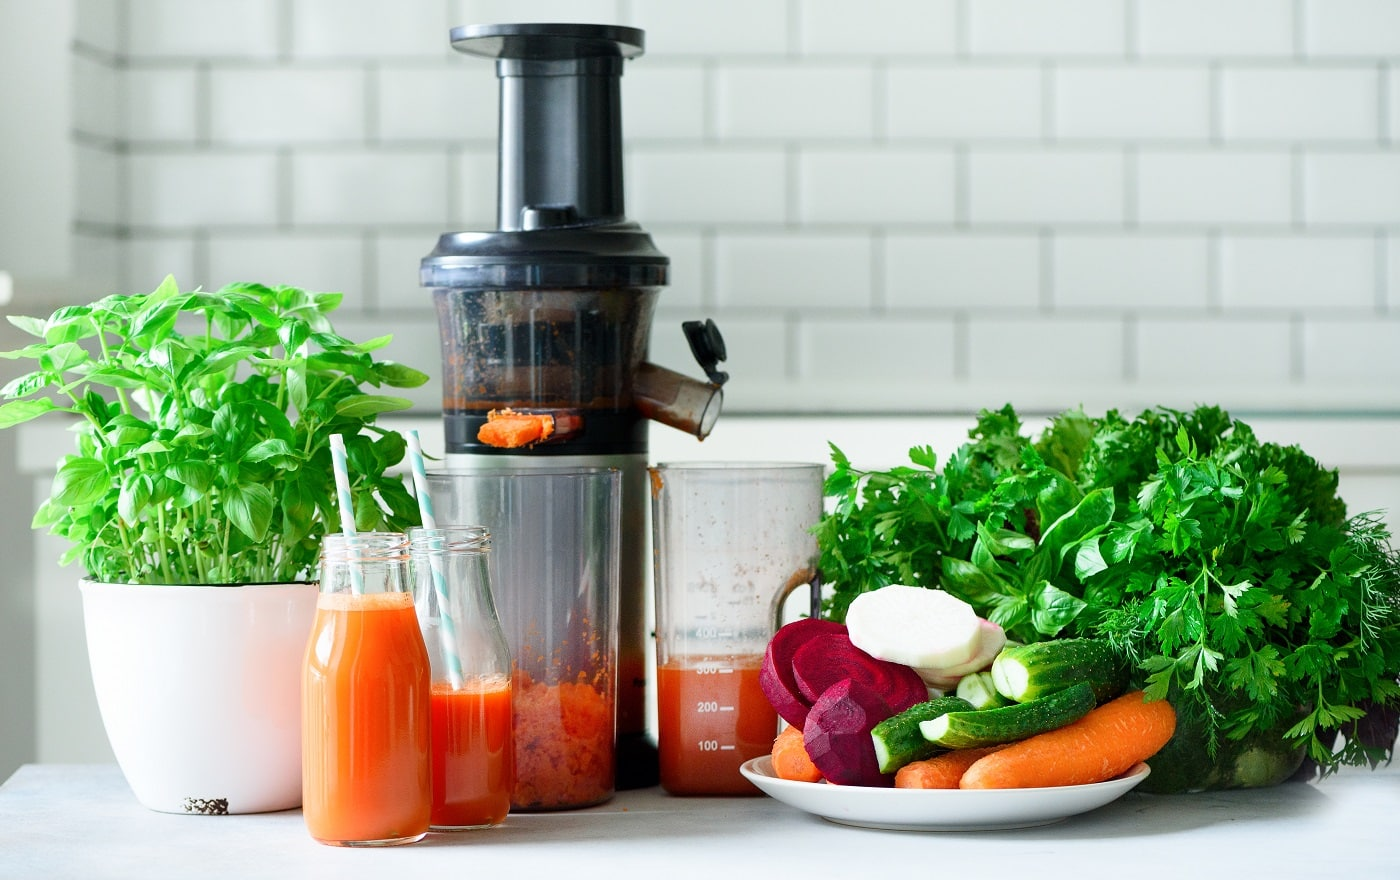 Woman making fresh drink. Juicer and carrot juice. Fruits in background. Clean eating, detox concept